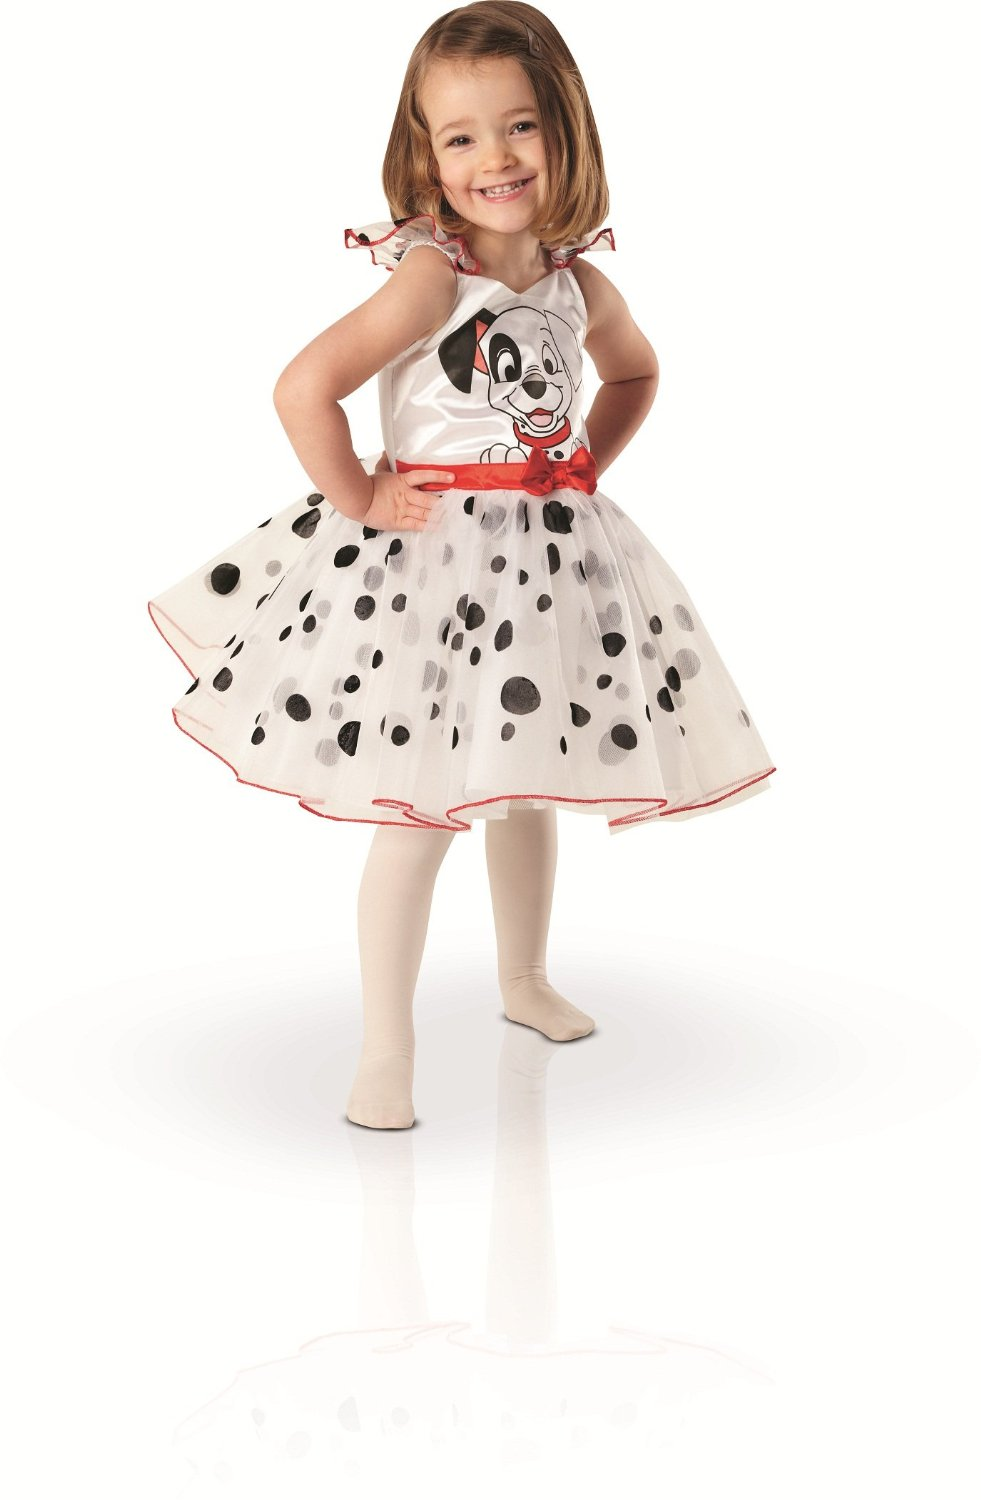 Disney's 101 dalmations dress toddler 2-3 years. 8